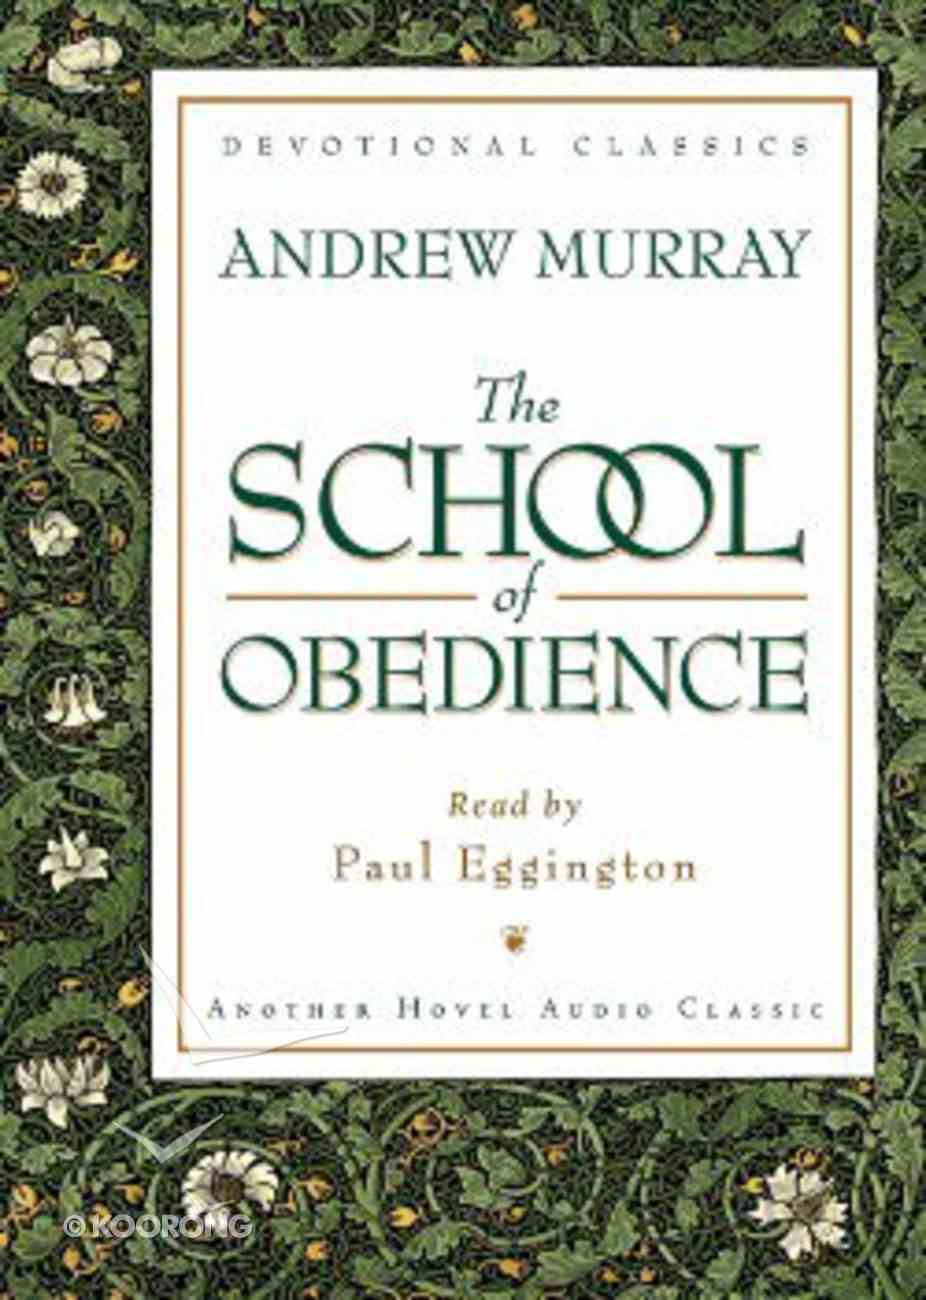 The School of Obedience CD